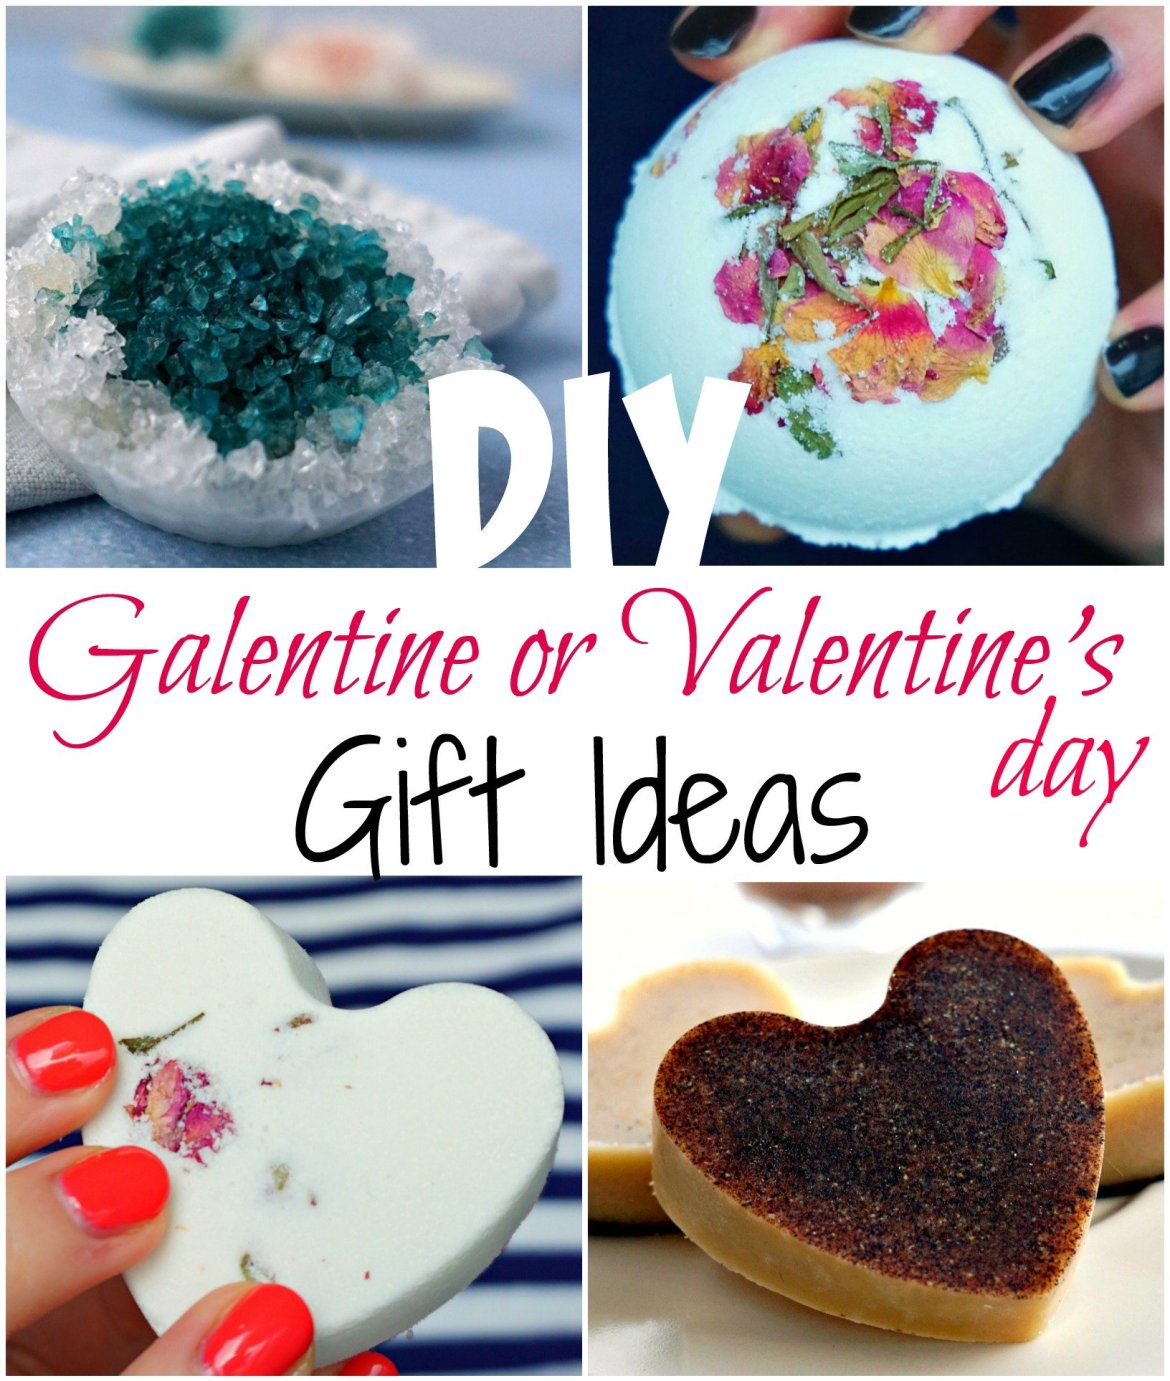 7 Easy and Cheap Galentine's or Valentine's day DIY gift ideas! Tutorials by The Makeup Dummy